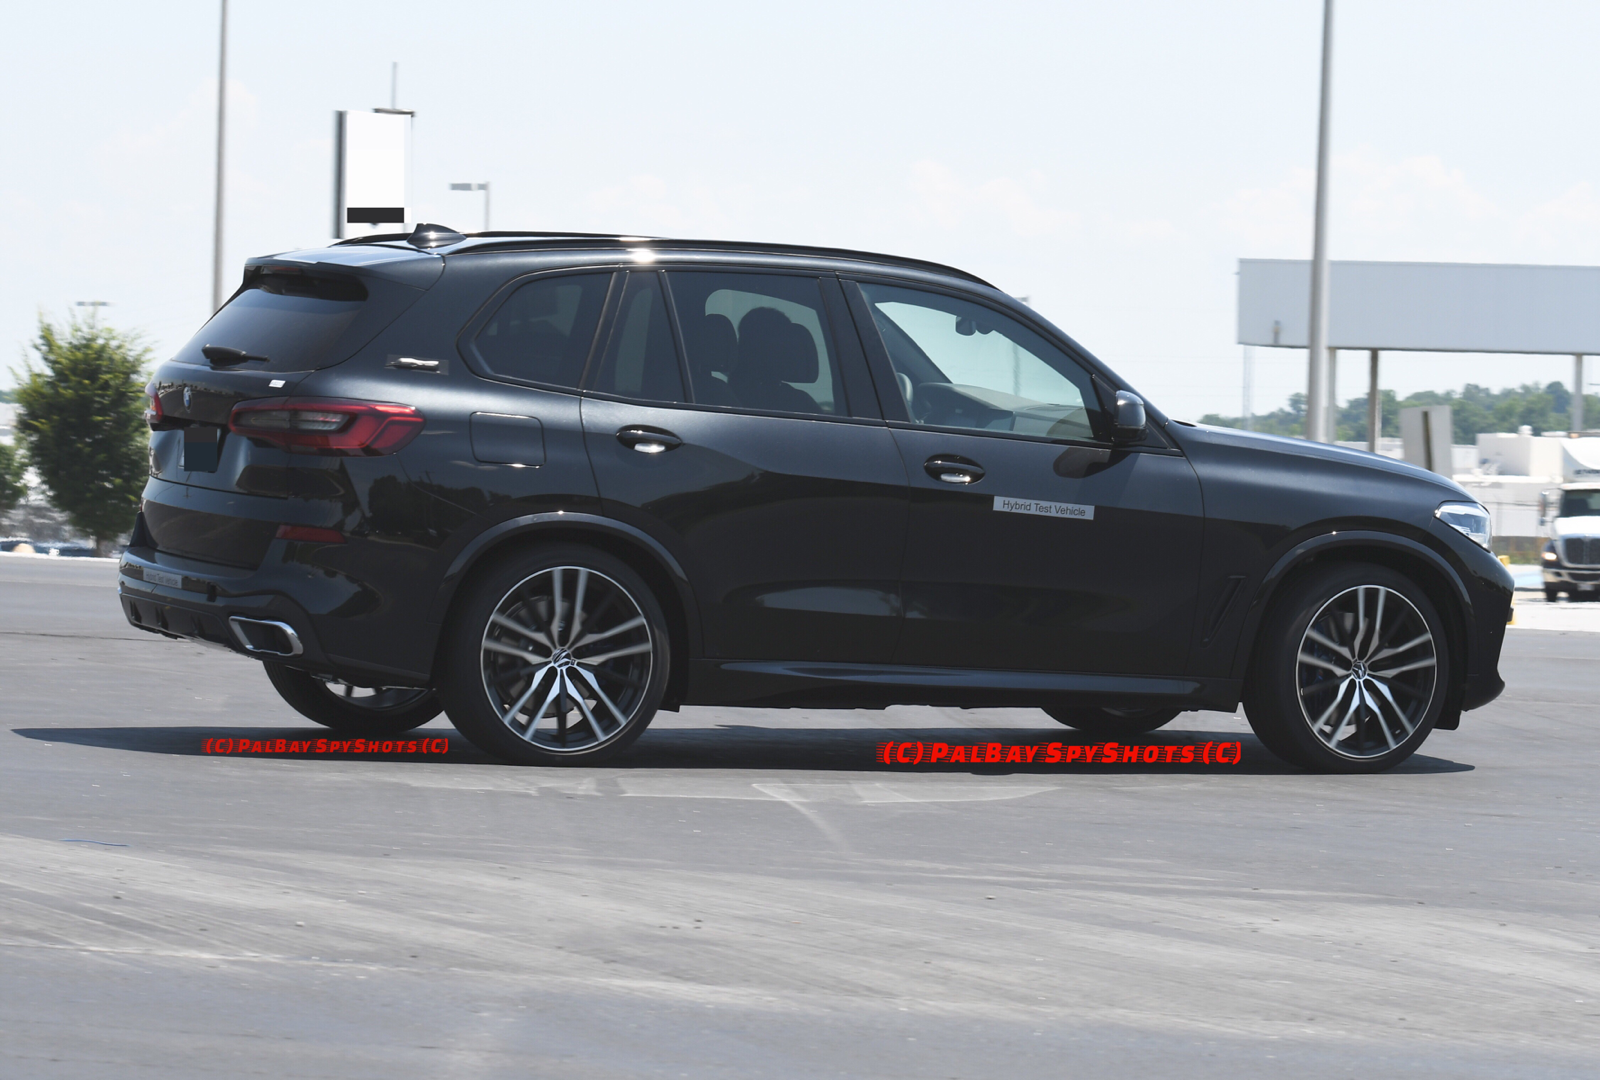 2018 - [BMW] X5 IV [G05] - Page 9 Attachment